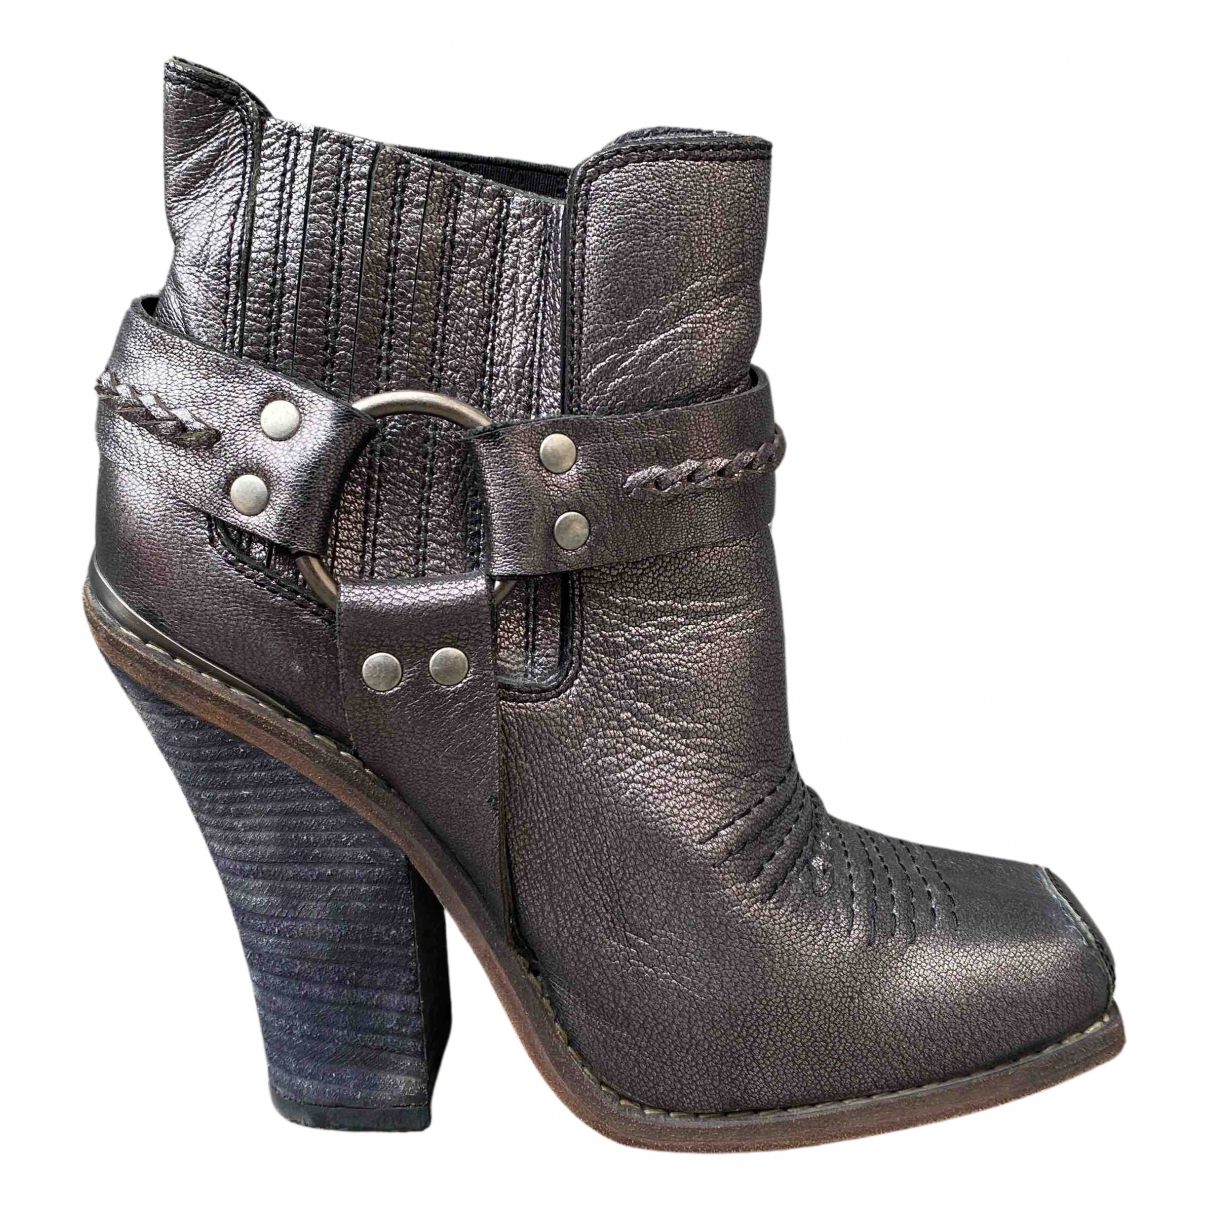 Barbara Bui N Silver Leather Boots for Women 40 EU